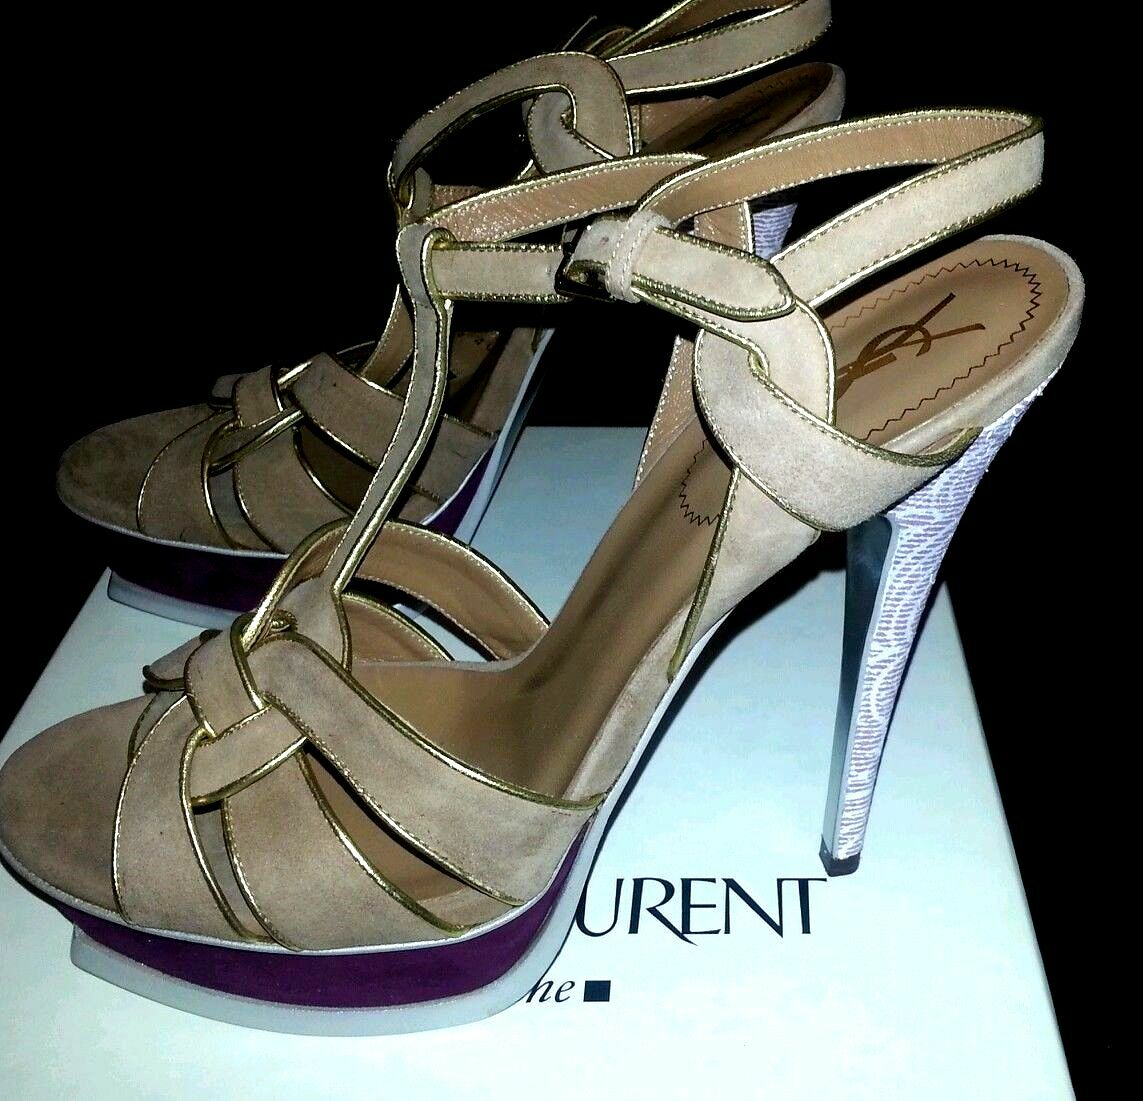 YSL TRIBUTE PLATFORM SANDALS NIB,sz 40, LIMITED EDITION SANDALS HIGH HEEL,US 9